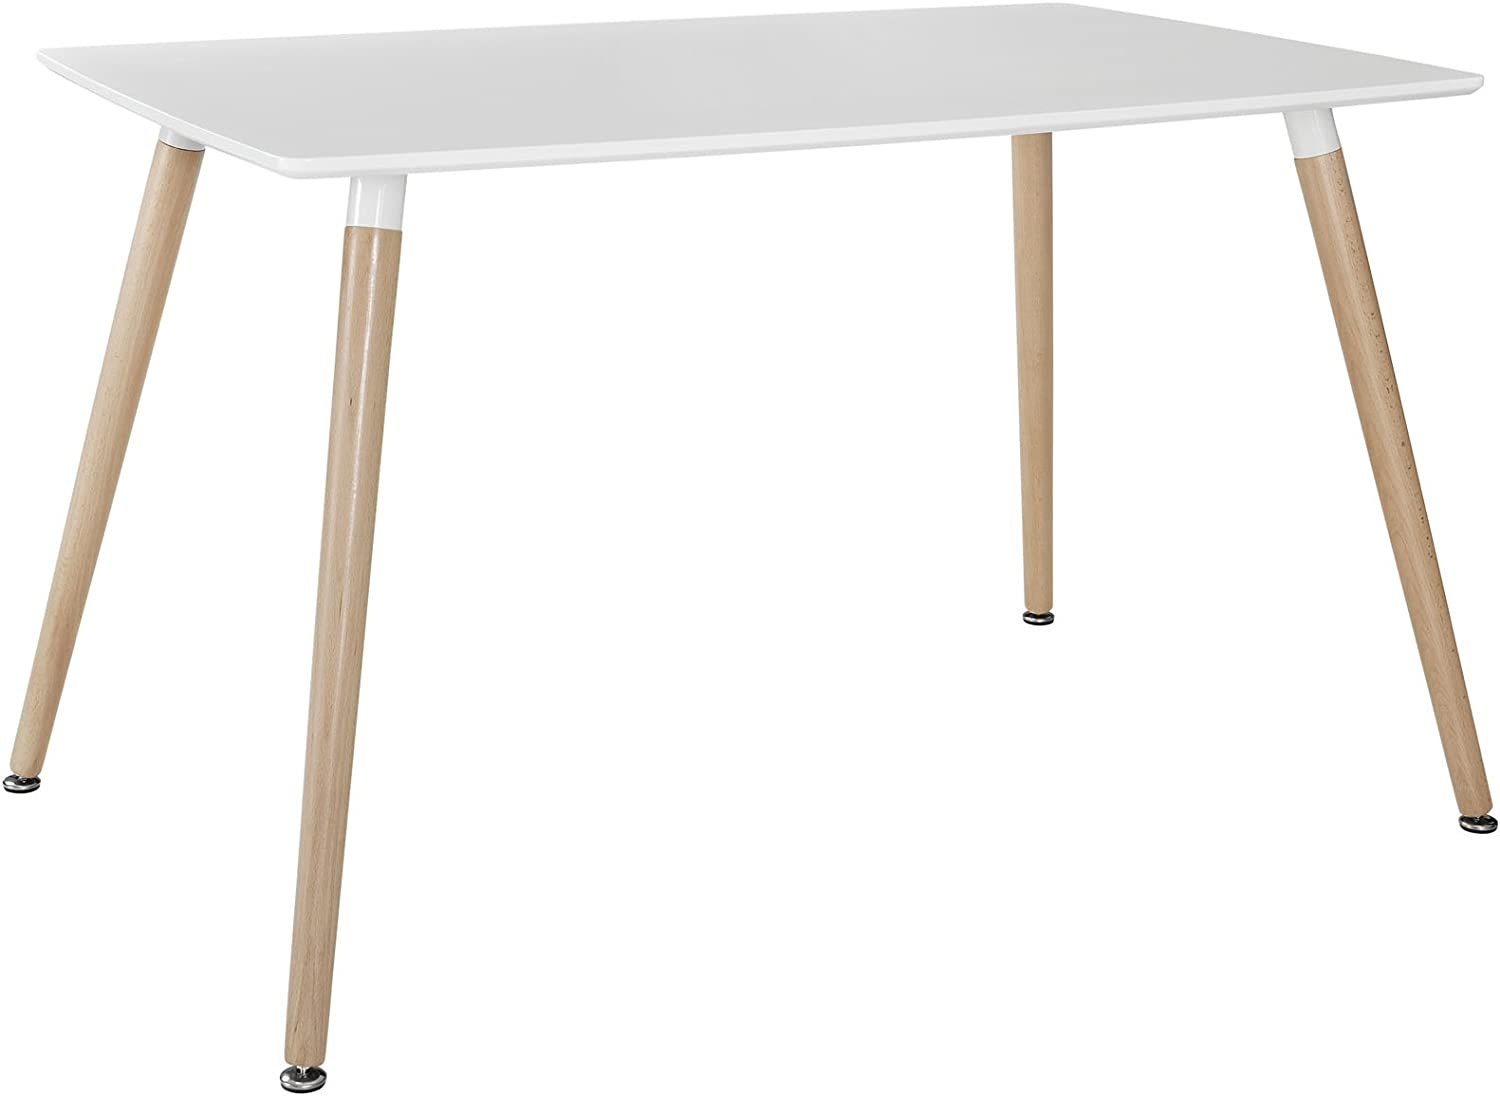 Modway Field Contemporary Mid-Century Dining Table in White